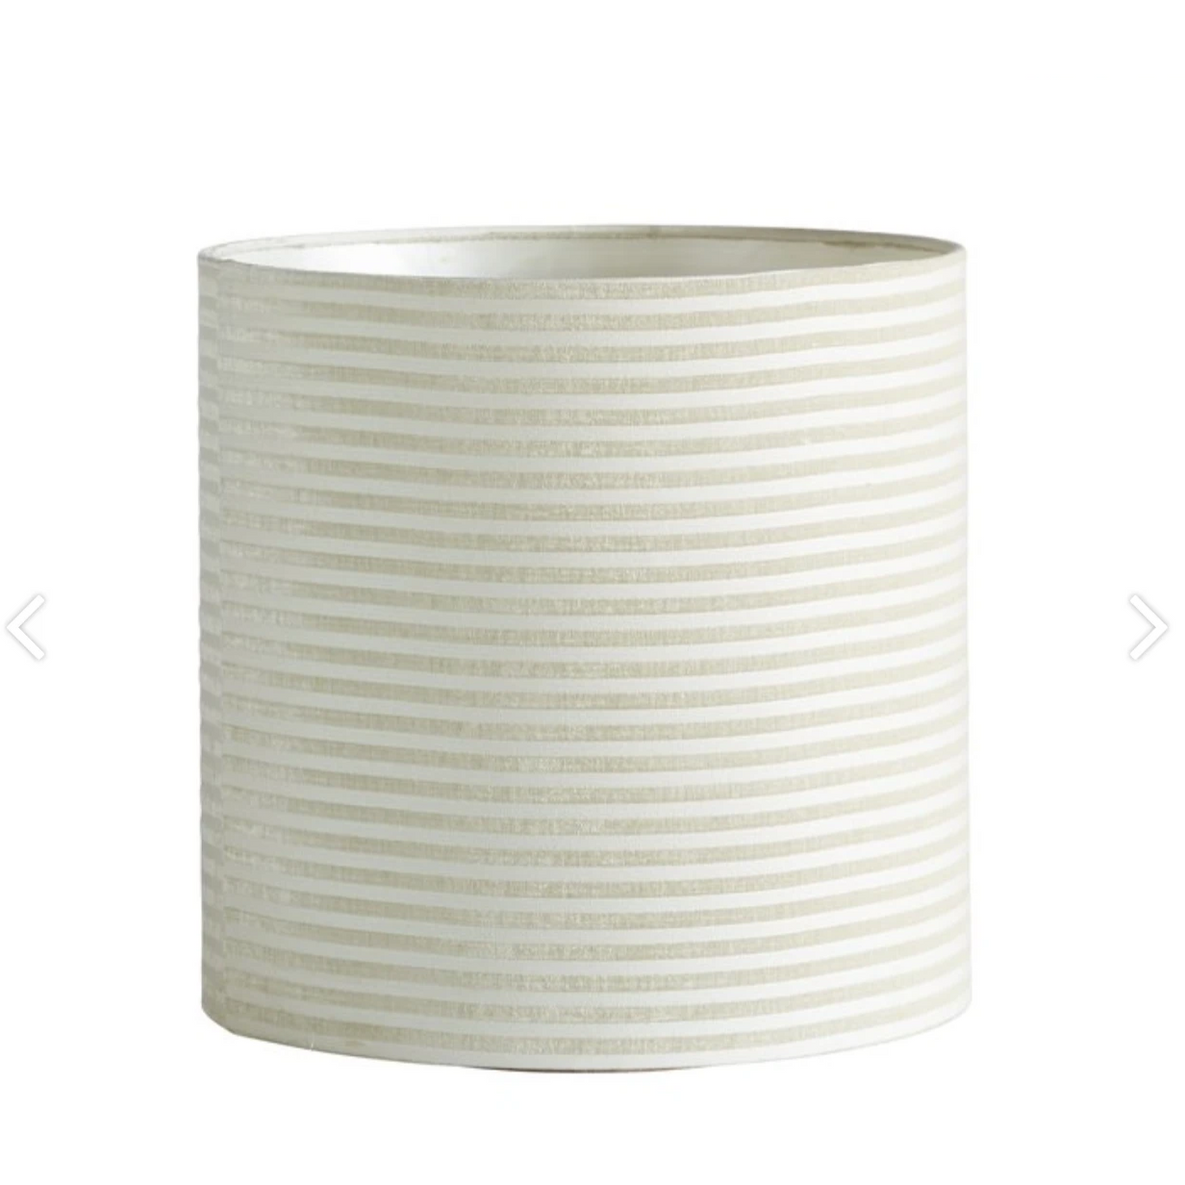 cylindrical lampshade in ecru white with cream stripes by designer tine k